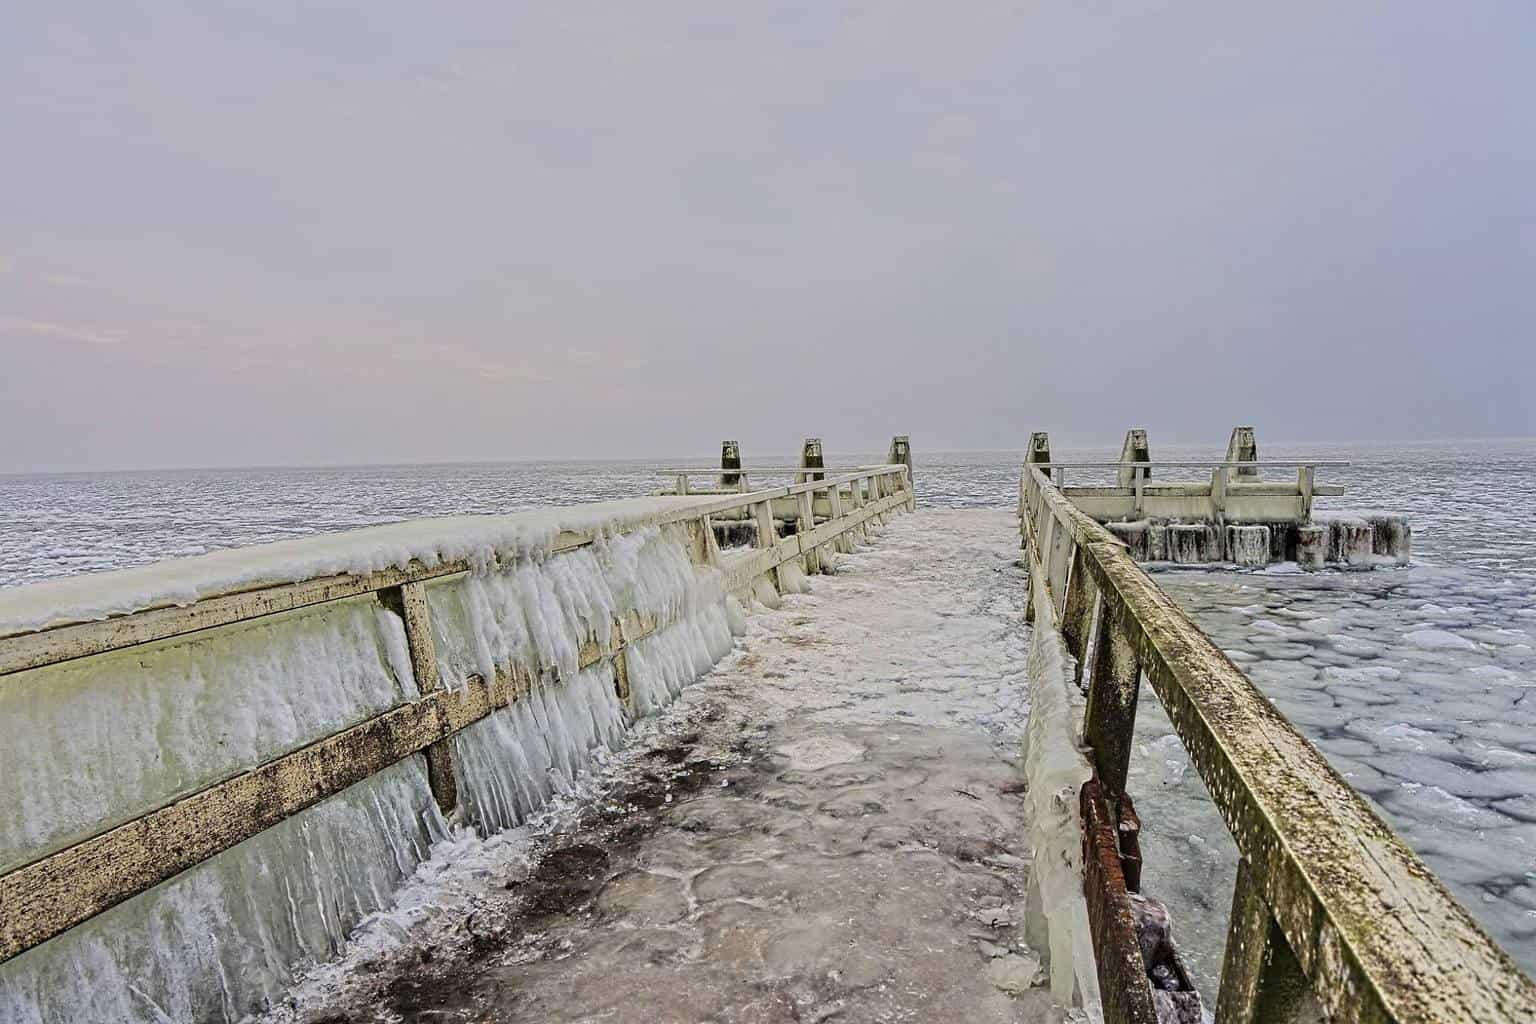 Arctic condition at the IJsselmeer, the Netherlands a few days back.